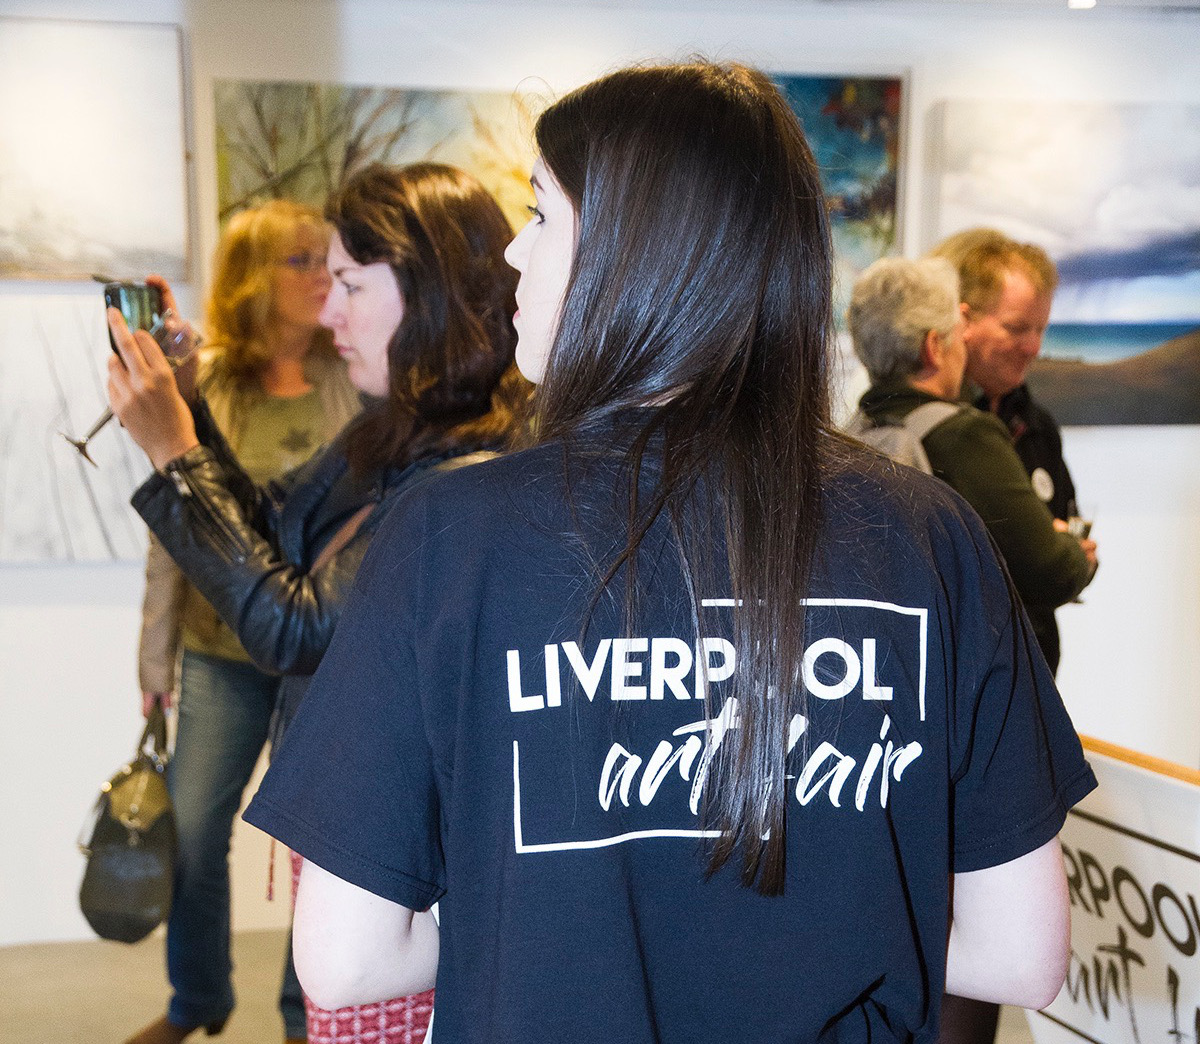 Liverpool Art Fair Sales Assistants Wanted